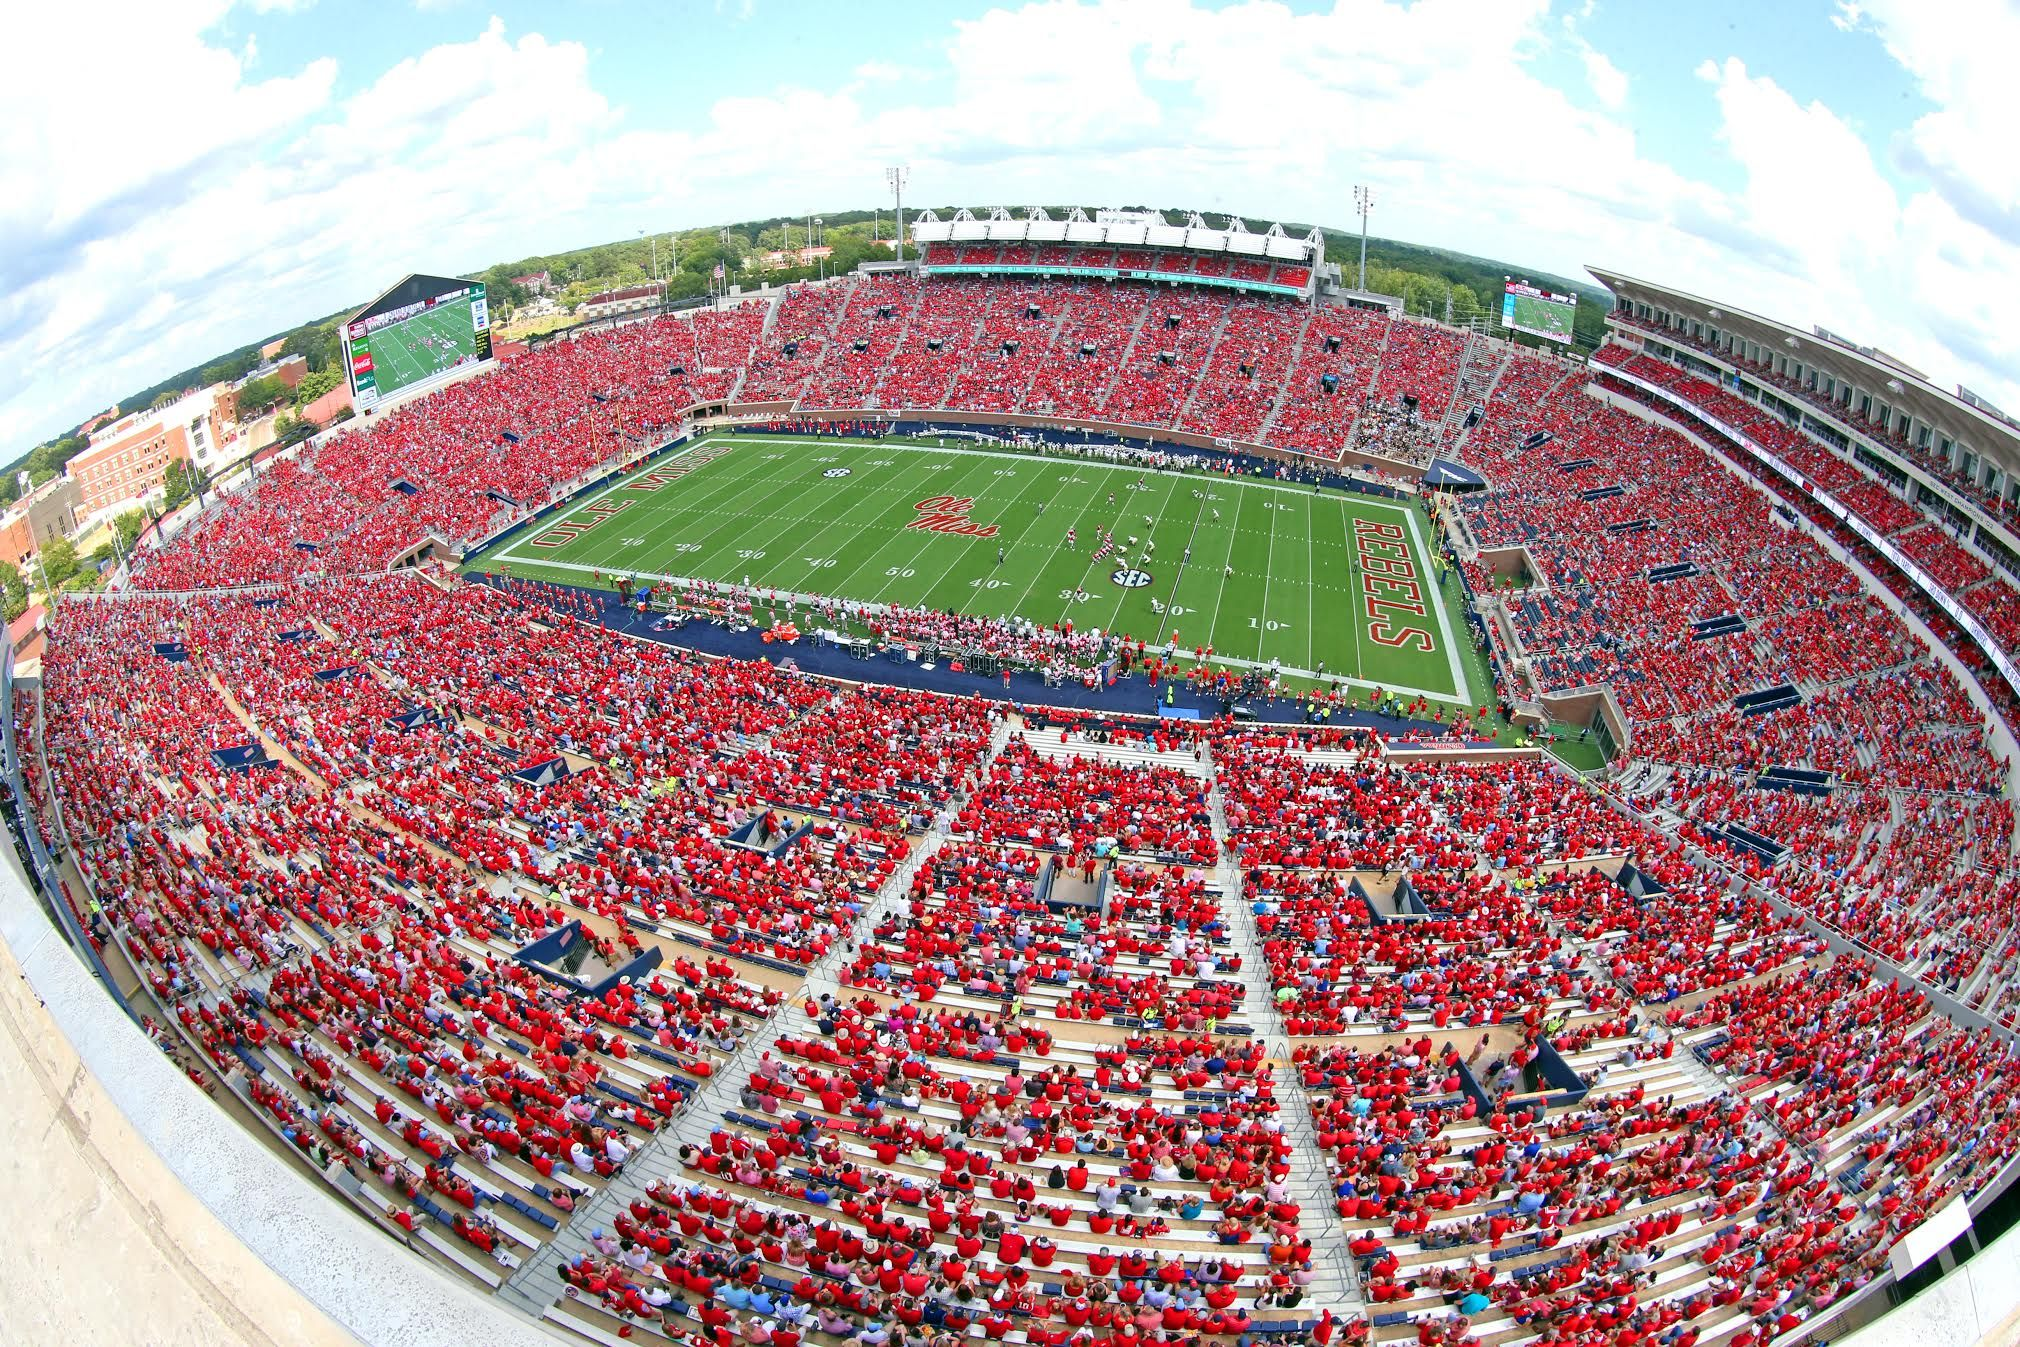 19 Ole Miss Football vs Wofford in the home opener of the